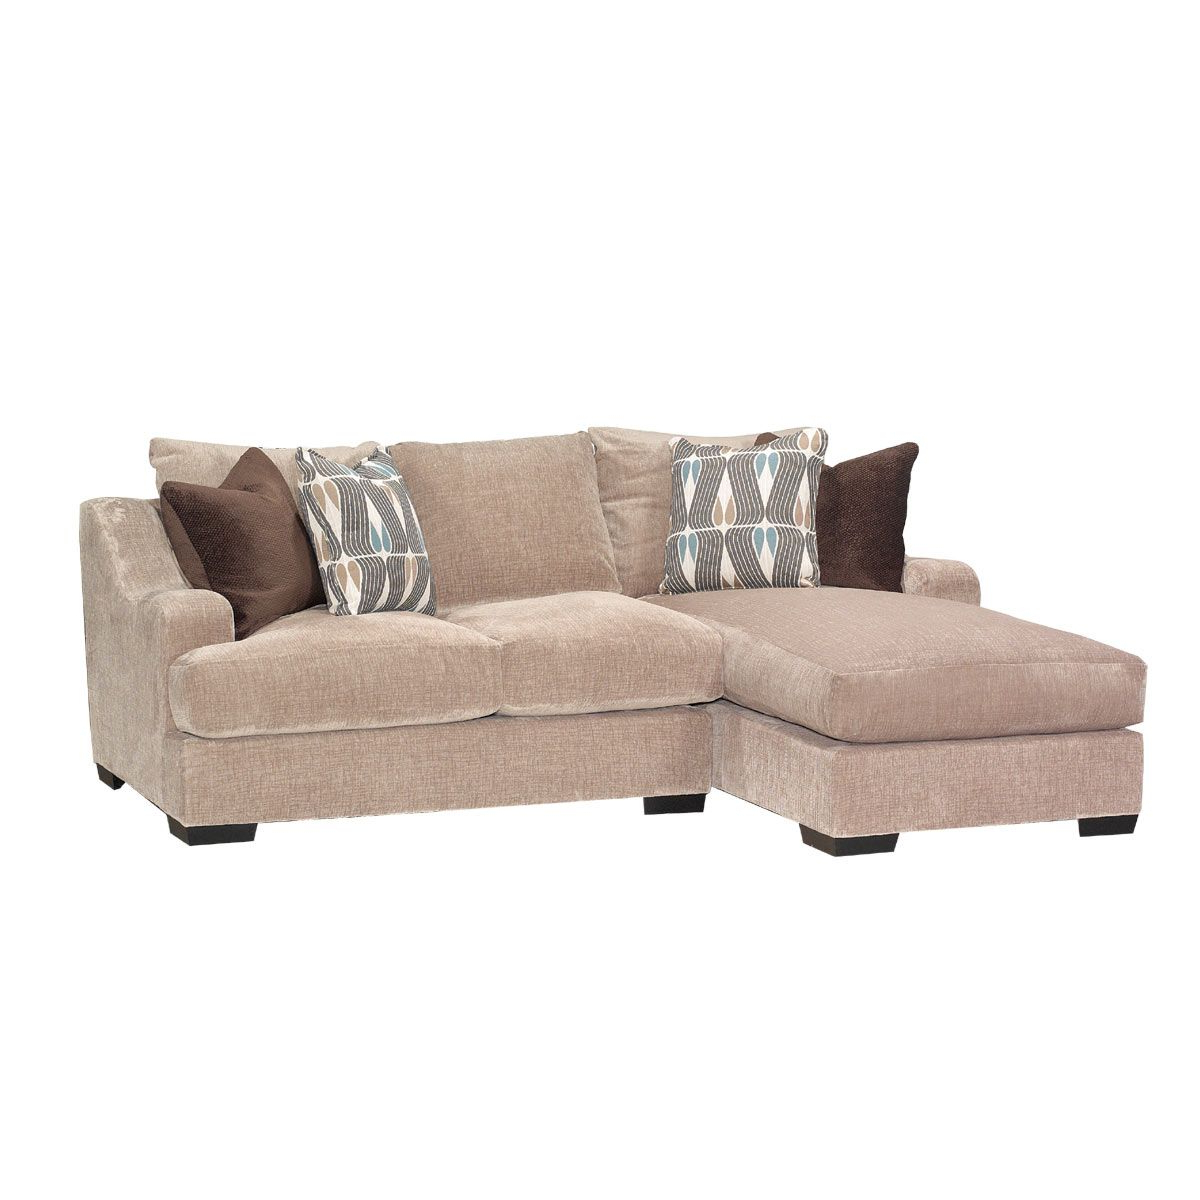 Favorite Stone Brown Casual Contemporary 2 Piece Sectional Regarding 2pc Maddox Left Arm Facing Sectional Sofas With Chaise Brown (View 10 of 20)